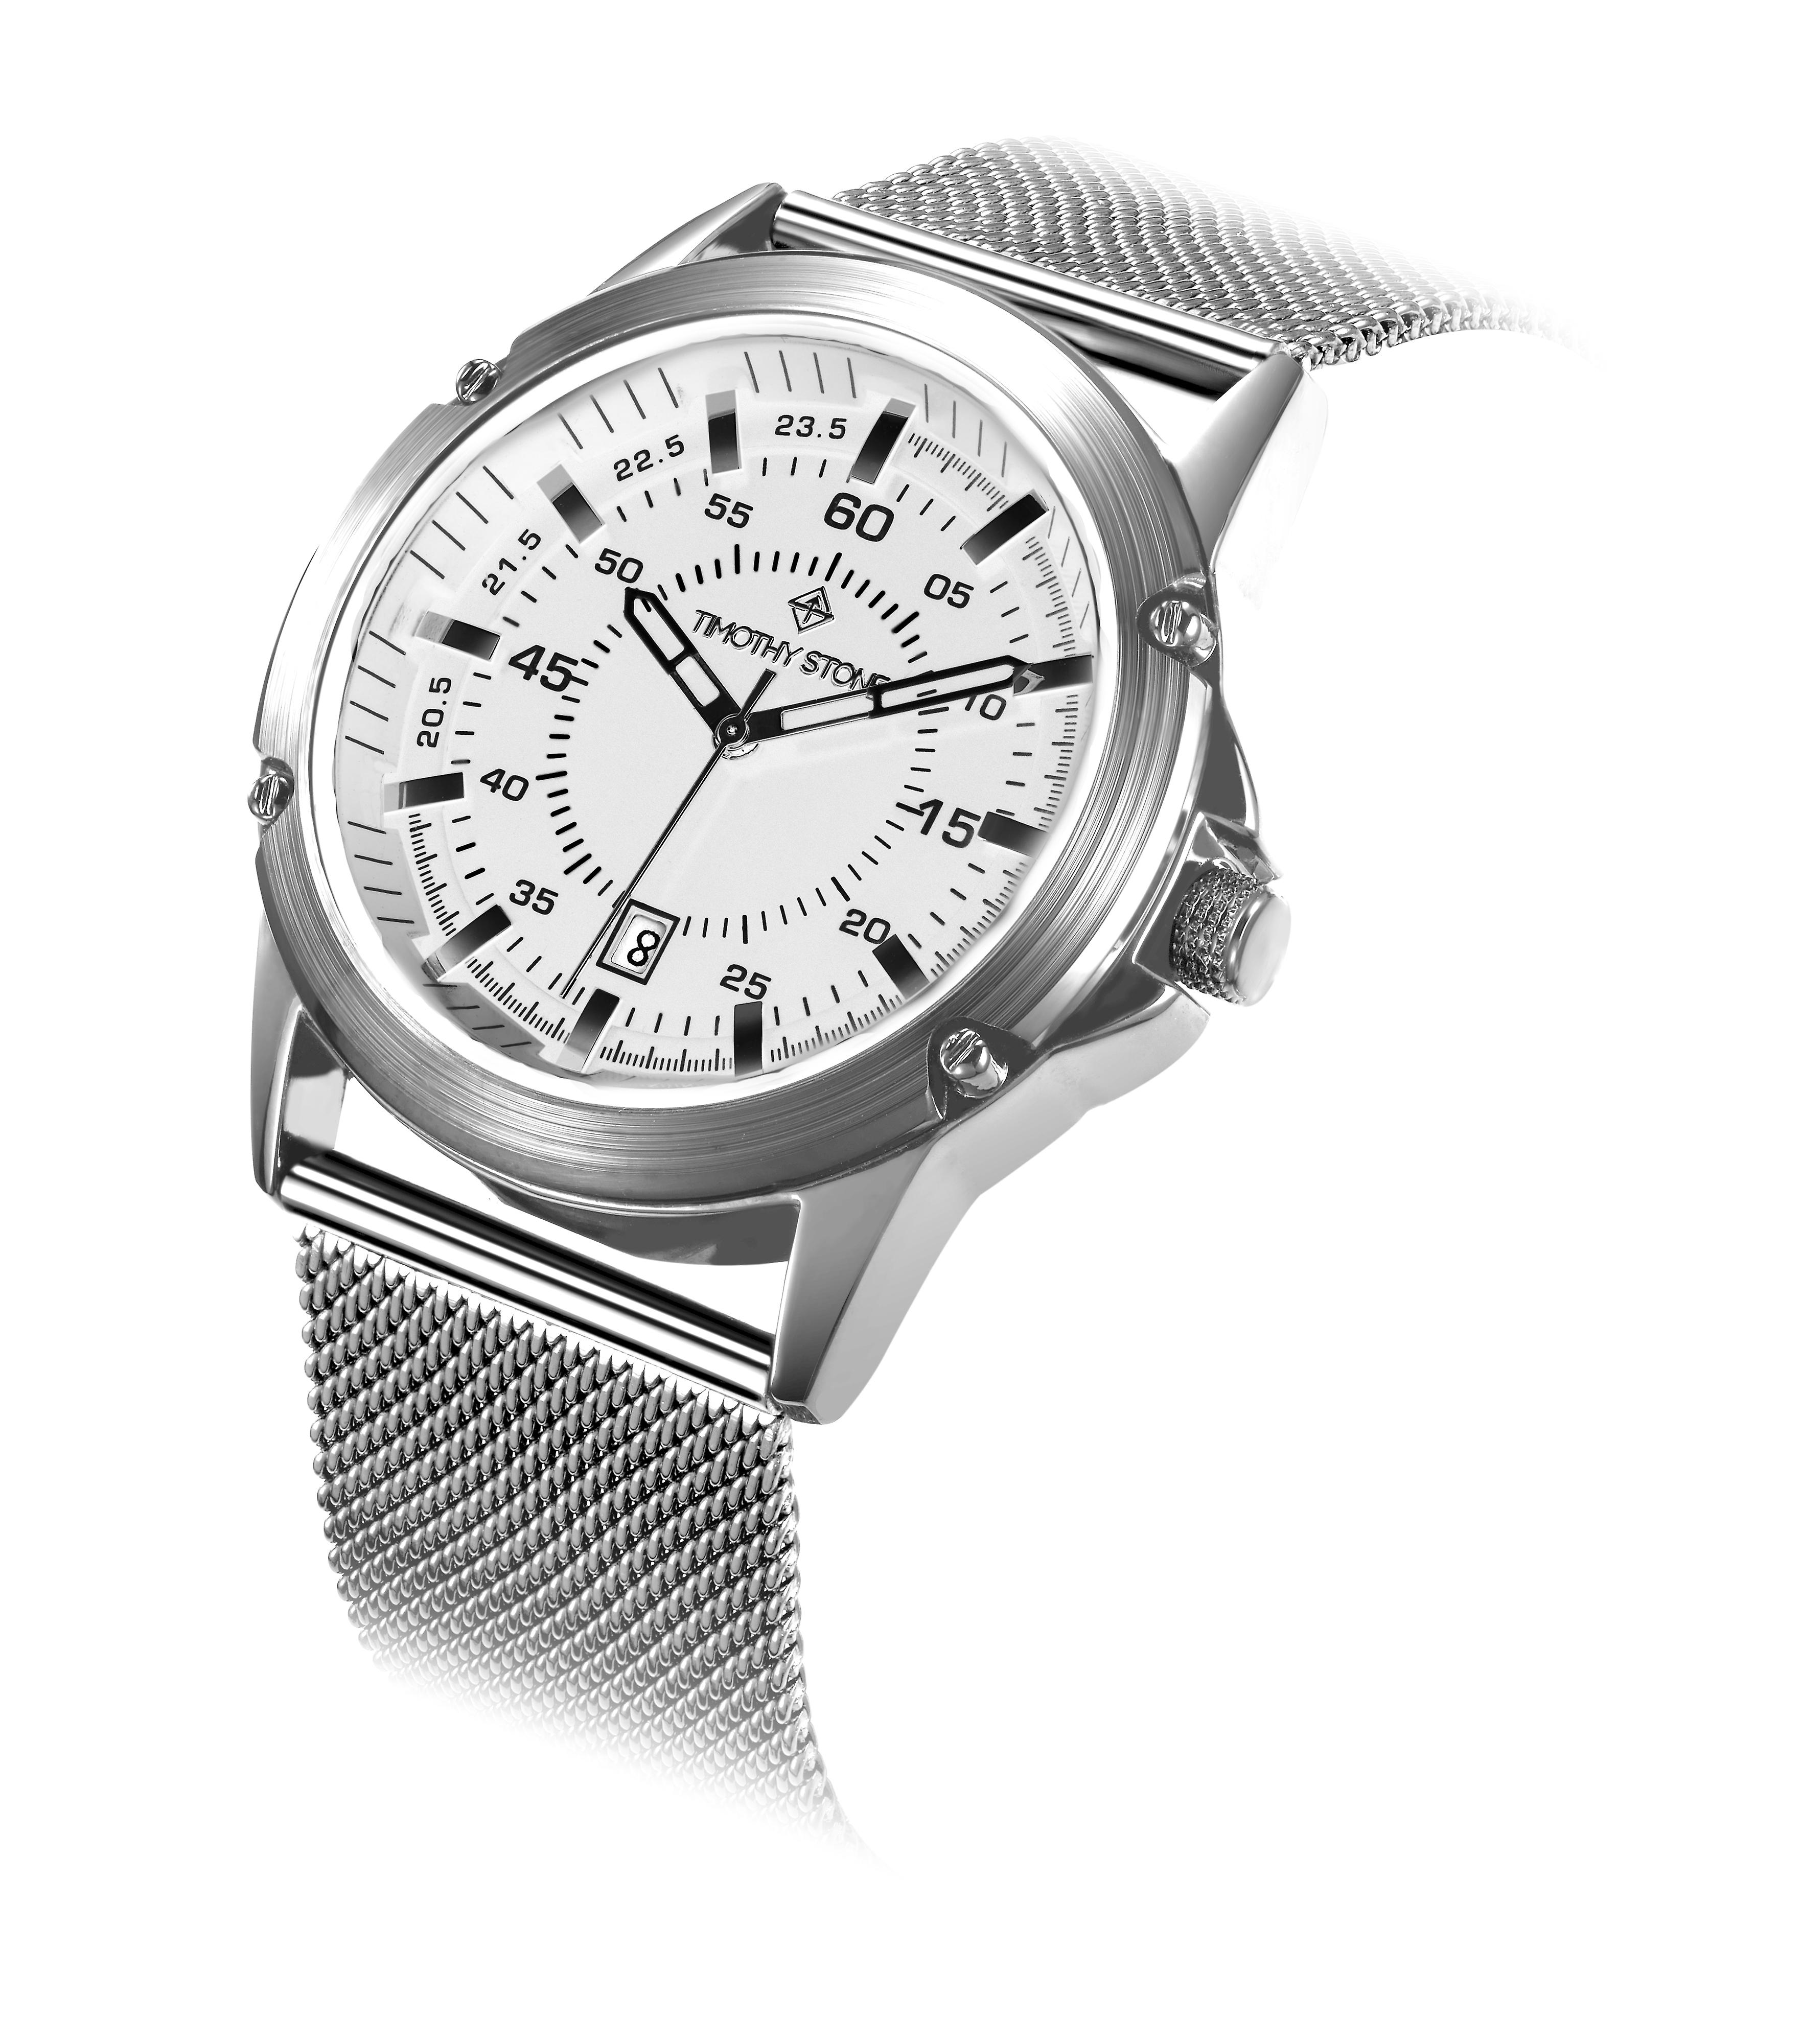 Timothy Stone Men's NORSE Silver Watch